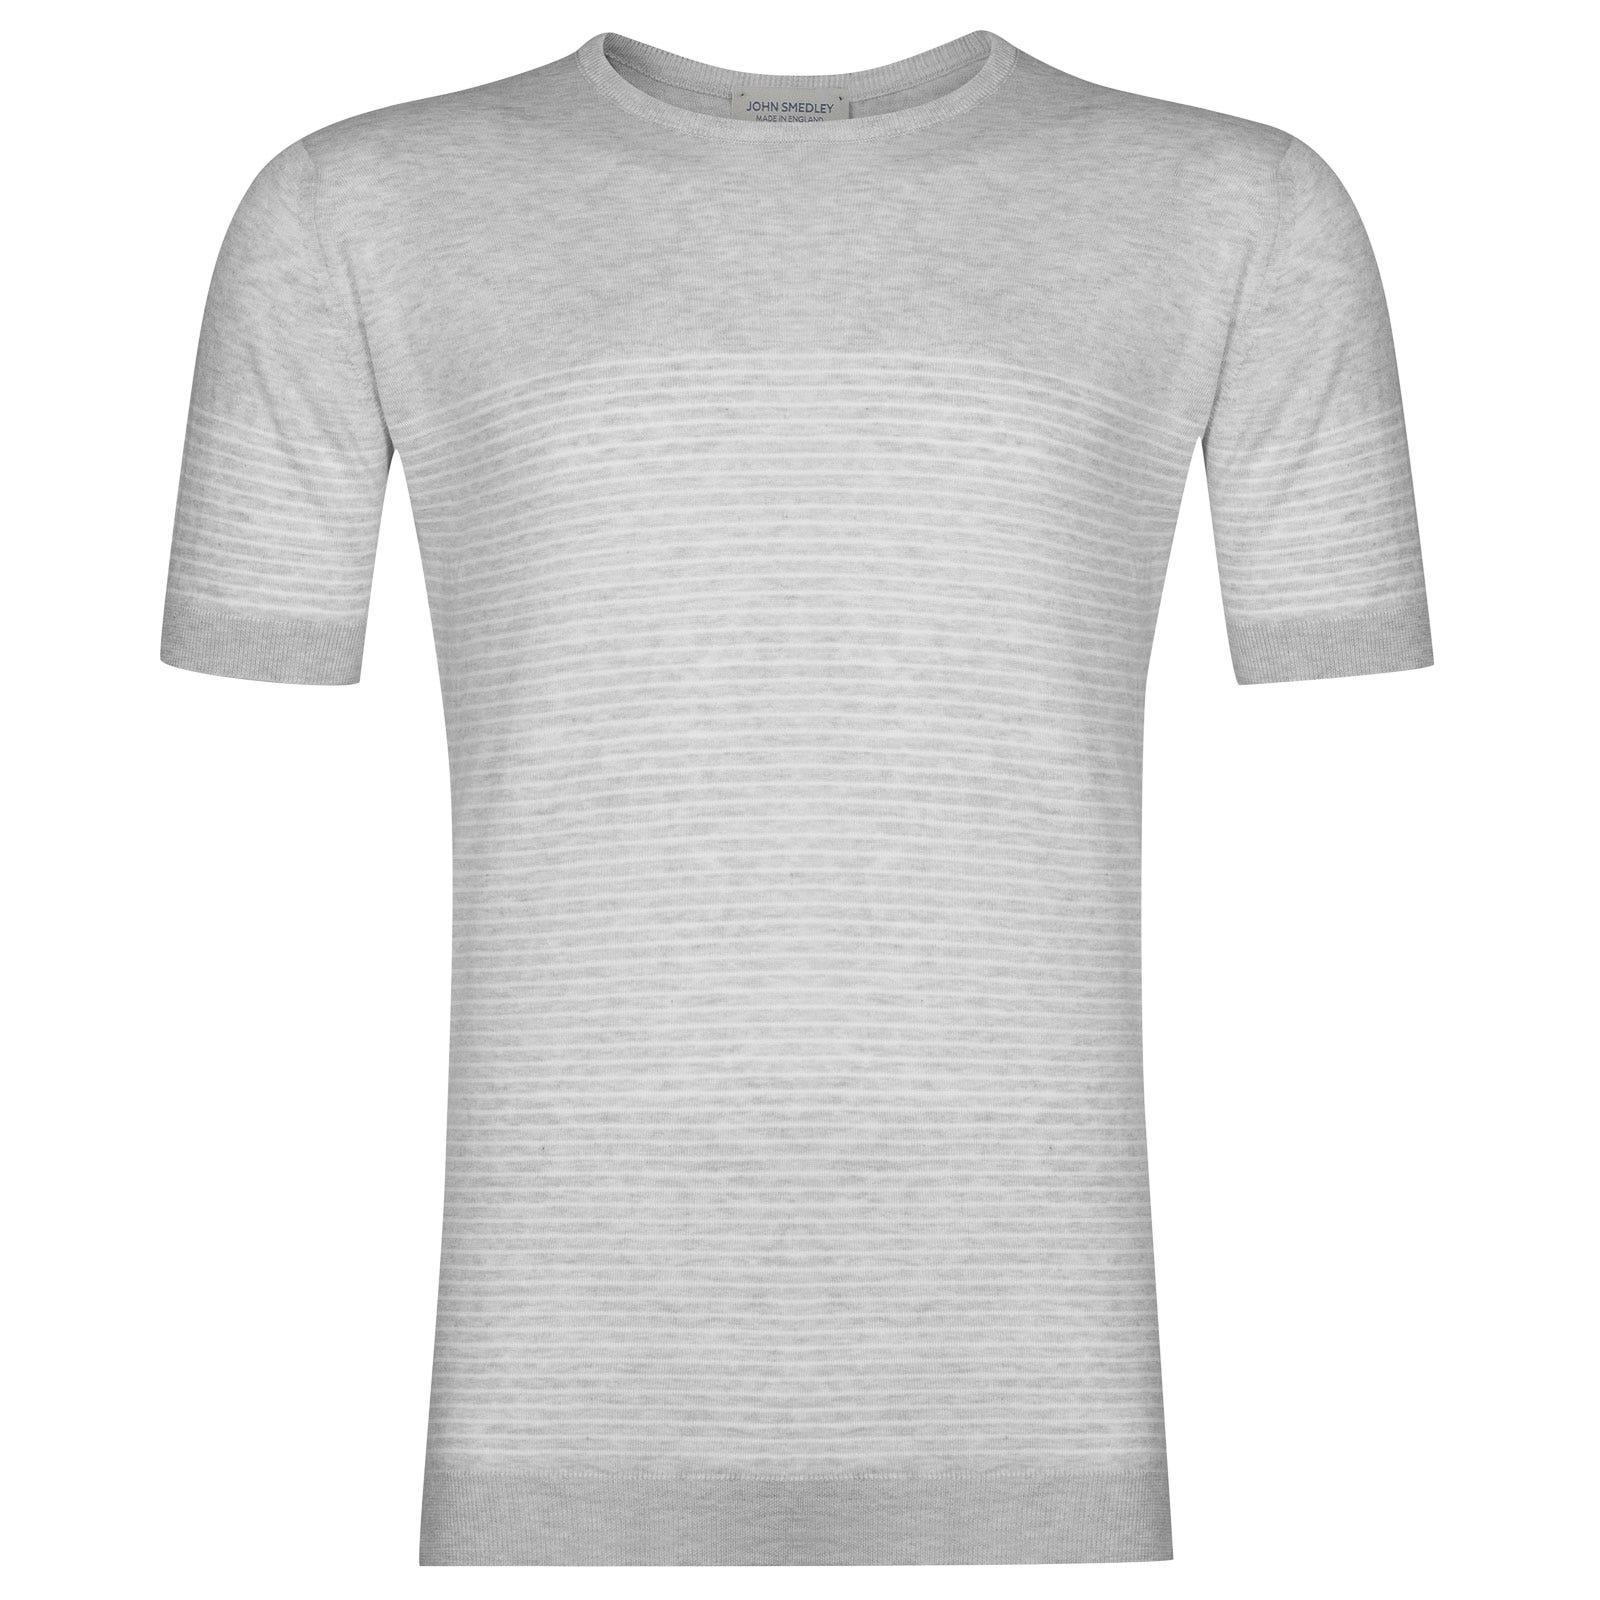 John Smedley Zester Tshirt in Feather Grey -Xl